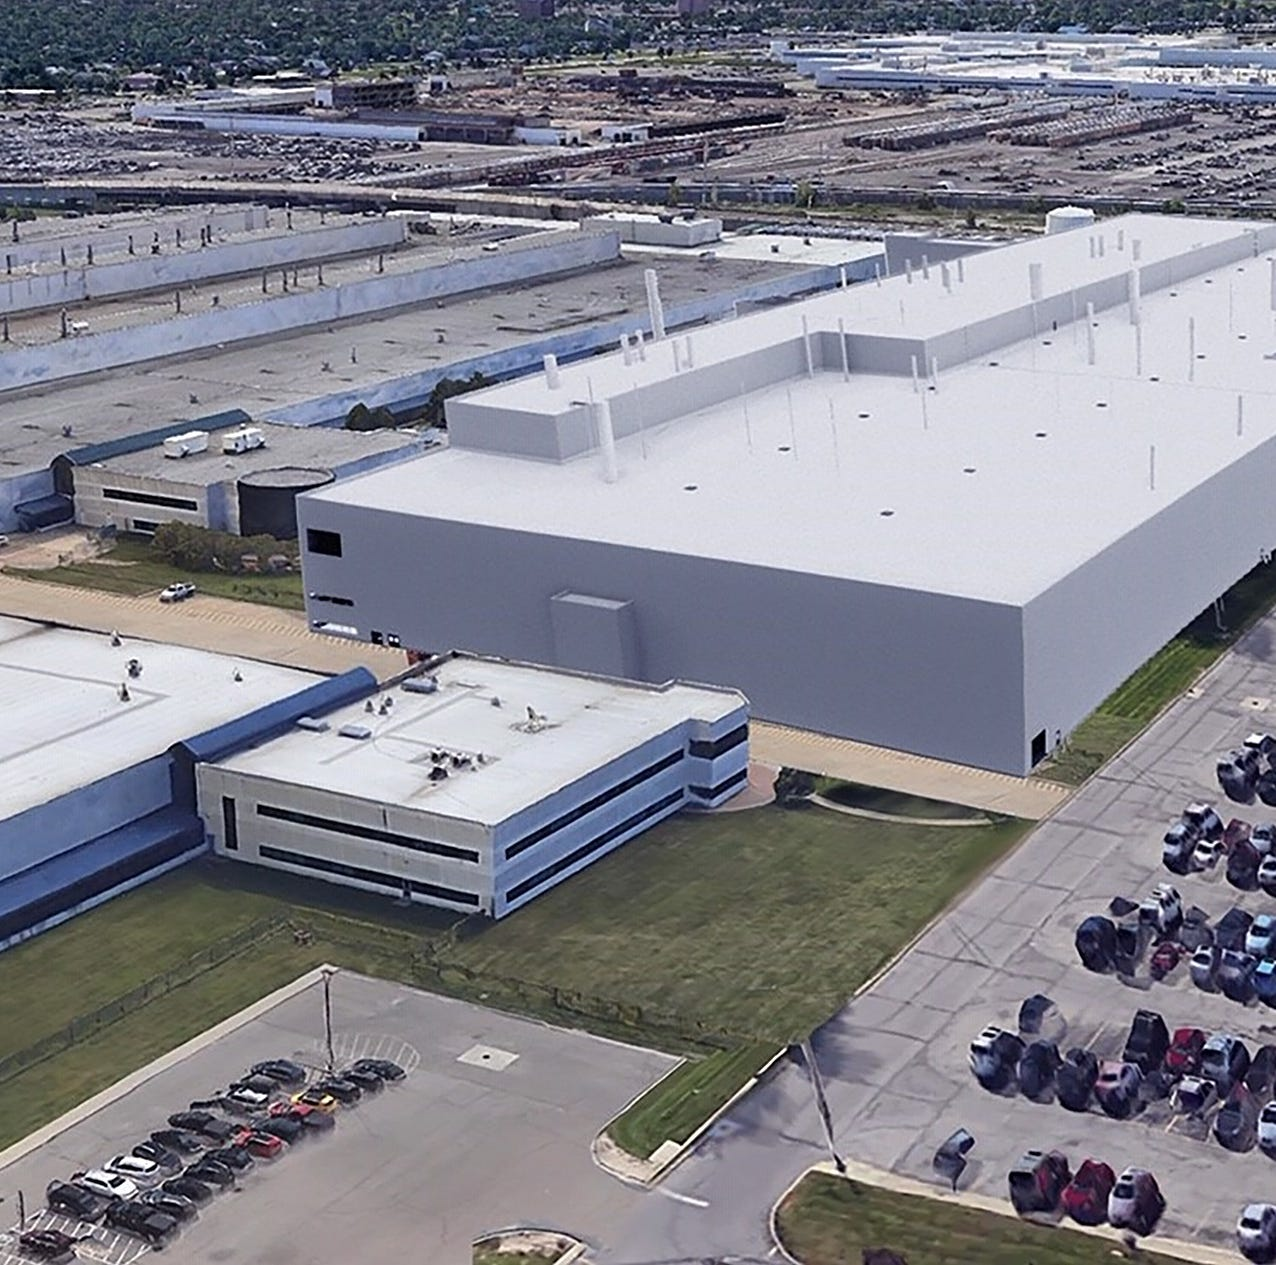 FCA wants $160M in tax incentives for new Jeep plant in Detroit